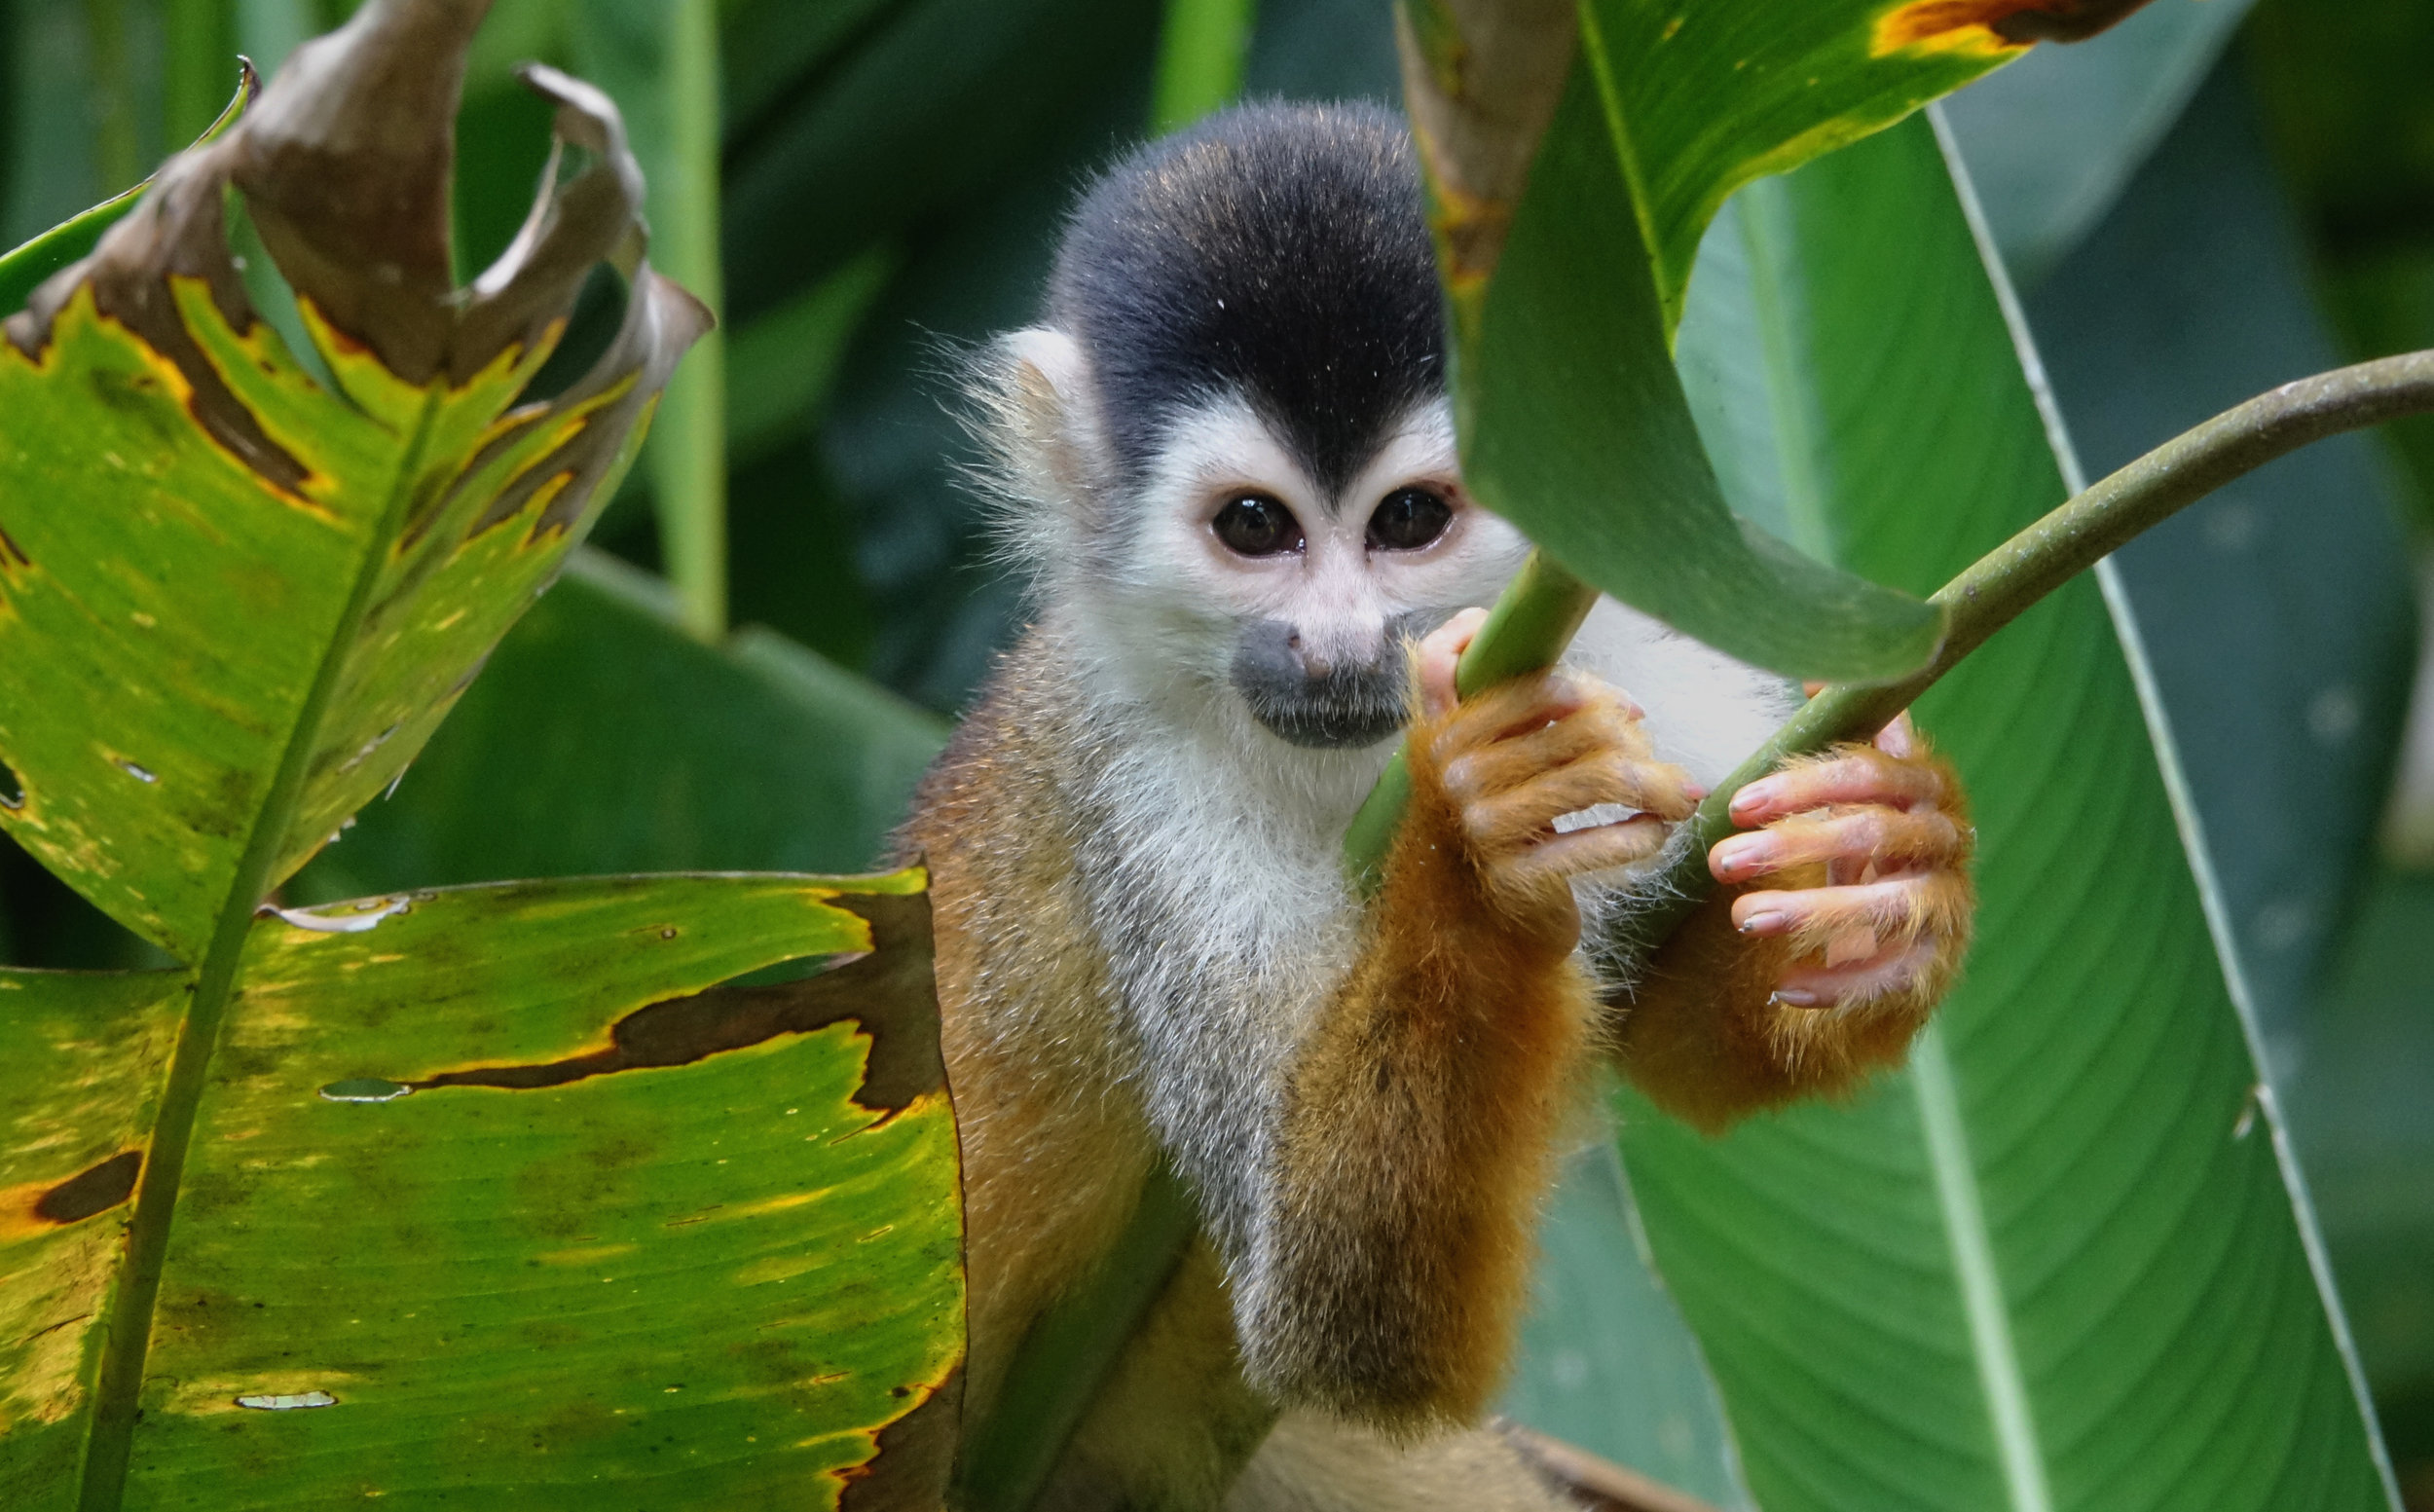 CENTRAL AMERICAN SQUIRREL MONKEY (Saimiri oerstedii), Rio Sierpe, Costa Rica, 2019